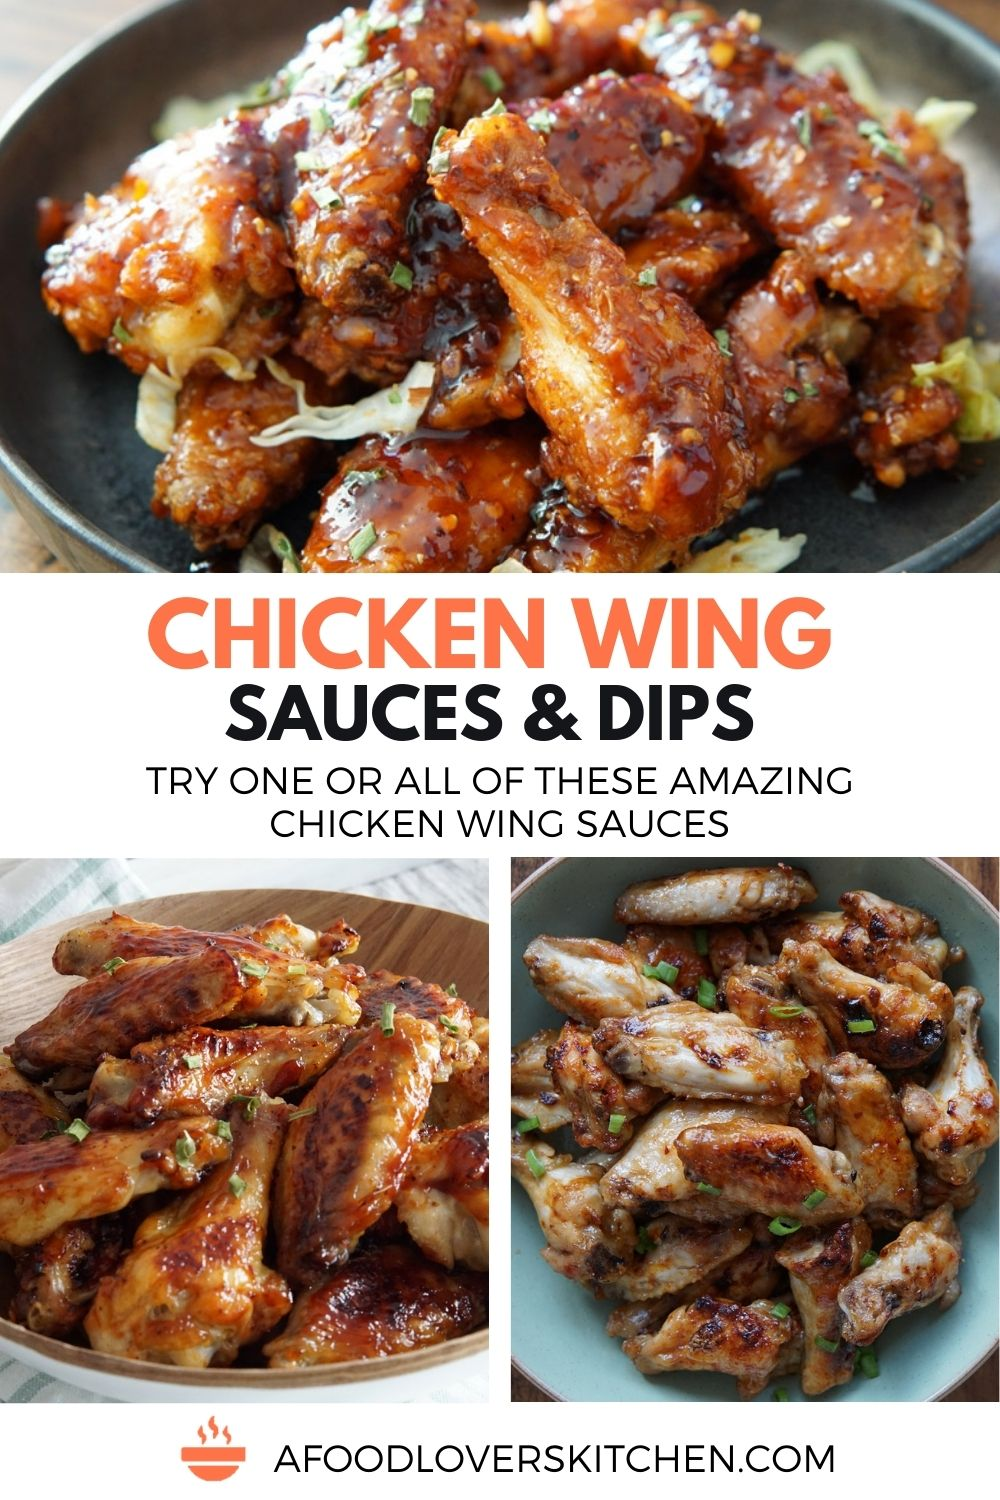 Tasty Dips & Sauces for Chicken Wings